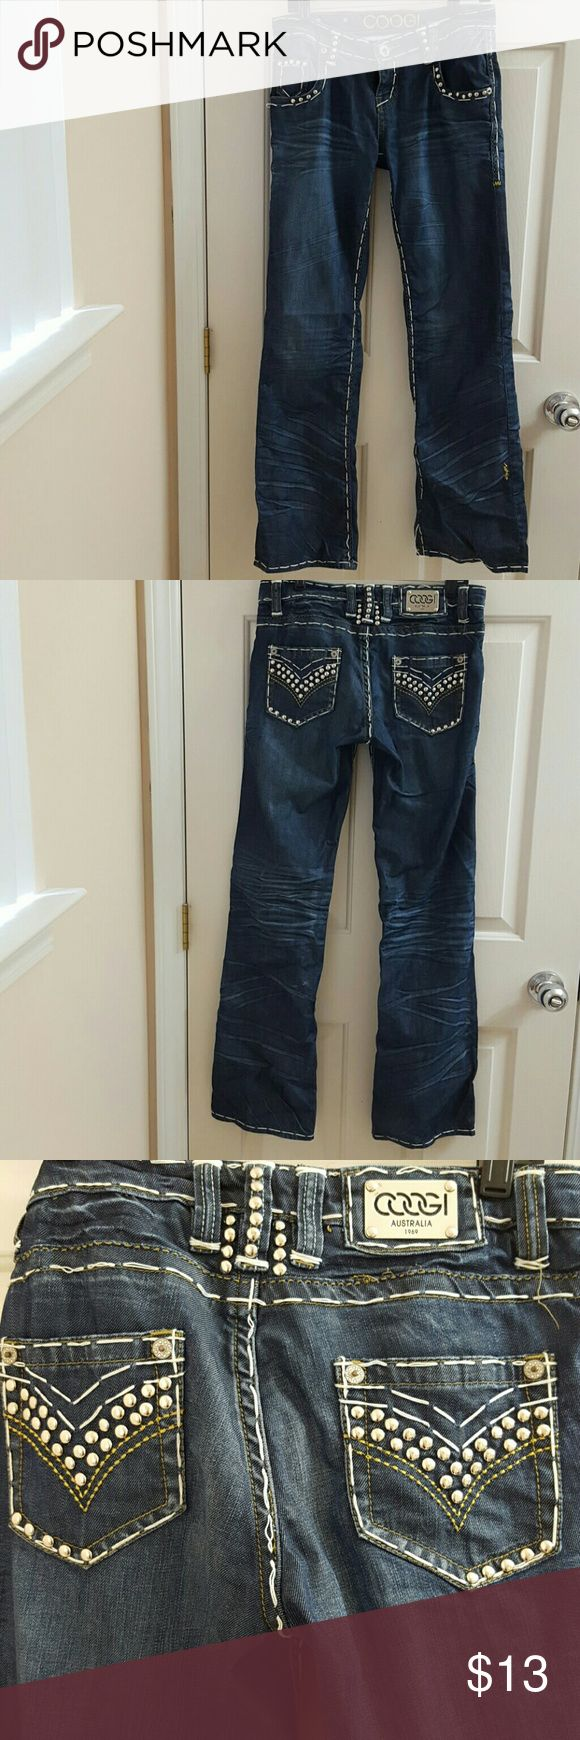 Coogi jeans Dark wash with some lighter detailing. Funky silver detail. Nice white stitching. Note: in picture #4 the stiching came out. Can sew back in if you are talented in that way, which I Am Not. Lol COOGI Pants Boot Cut & Flare